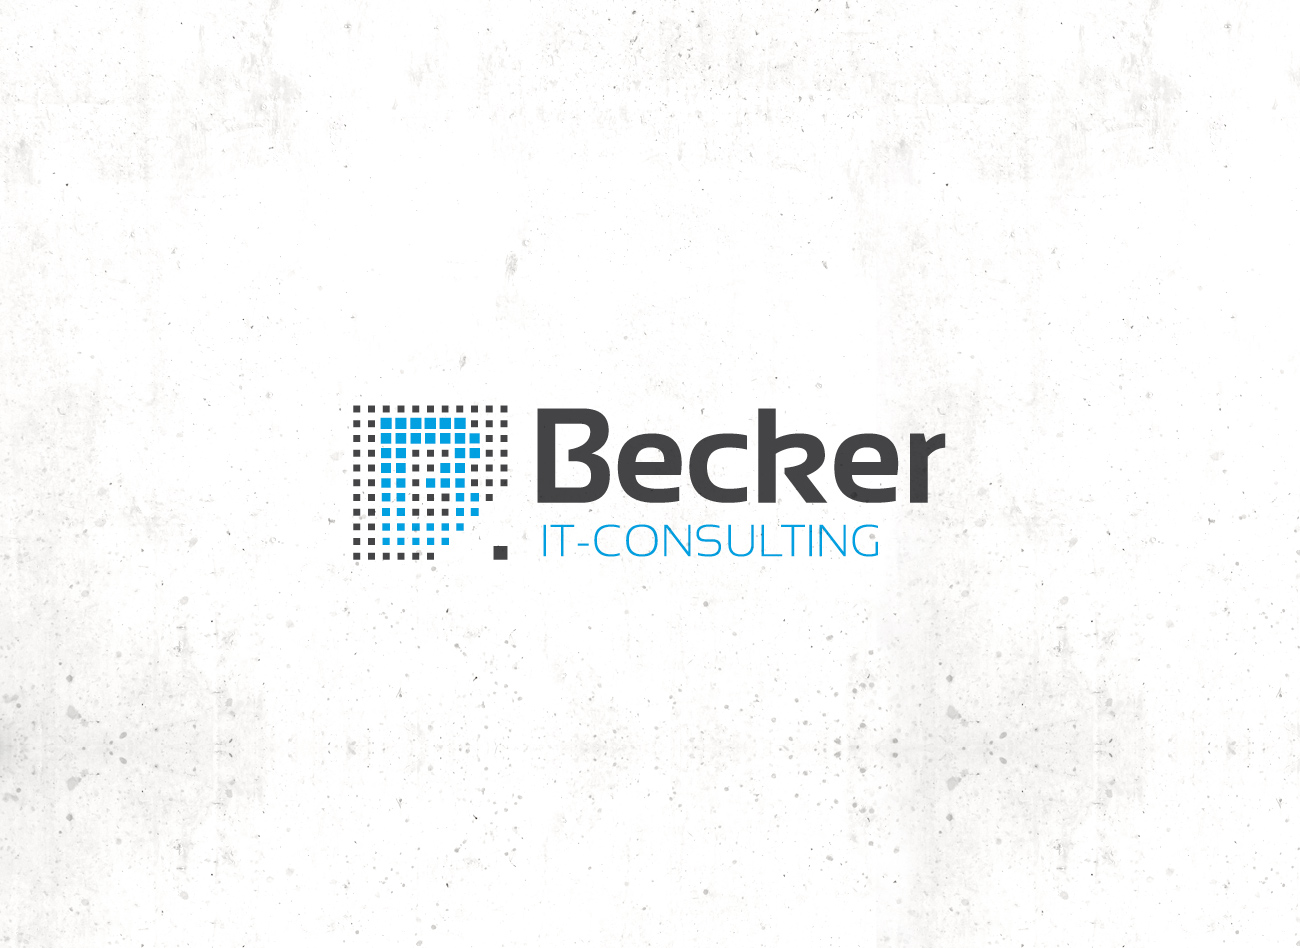 Logogestaltung / Becker IT